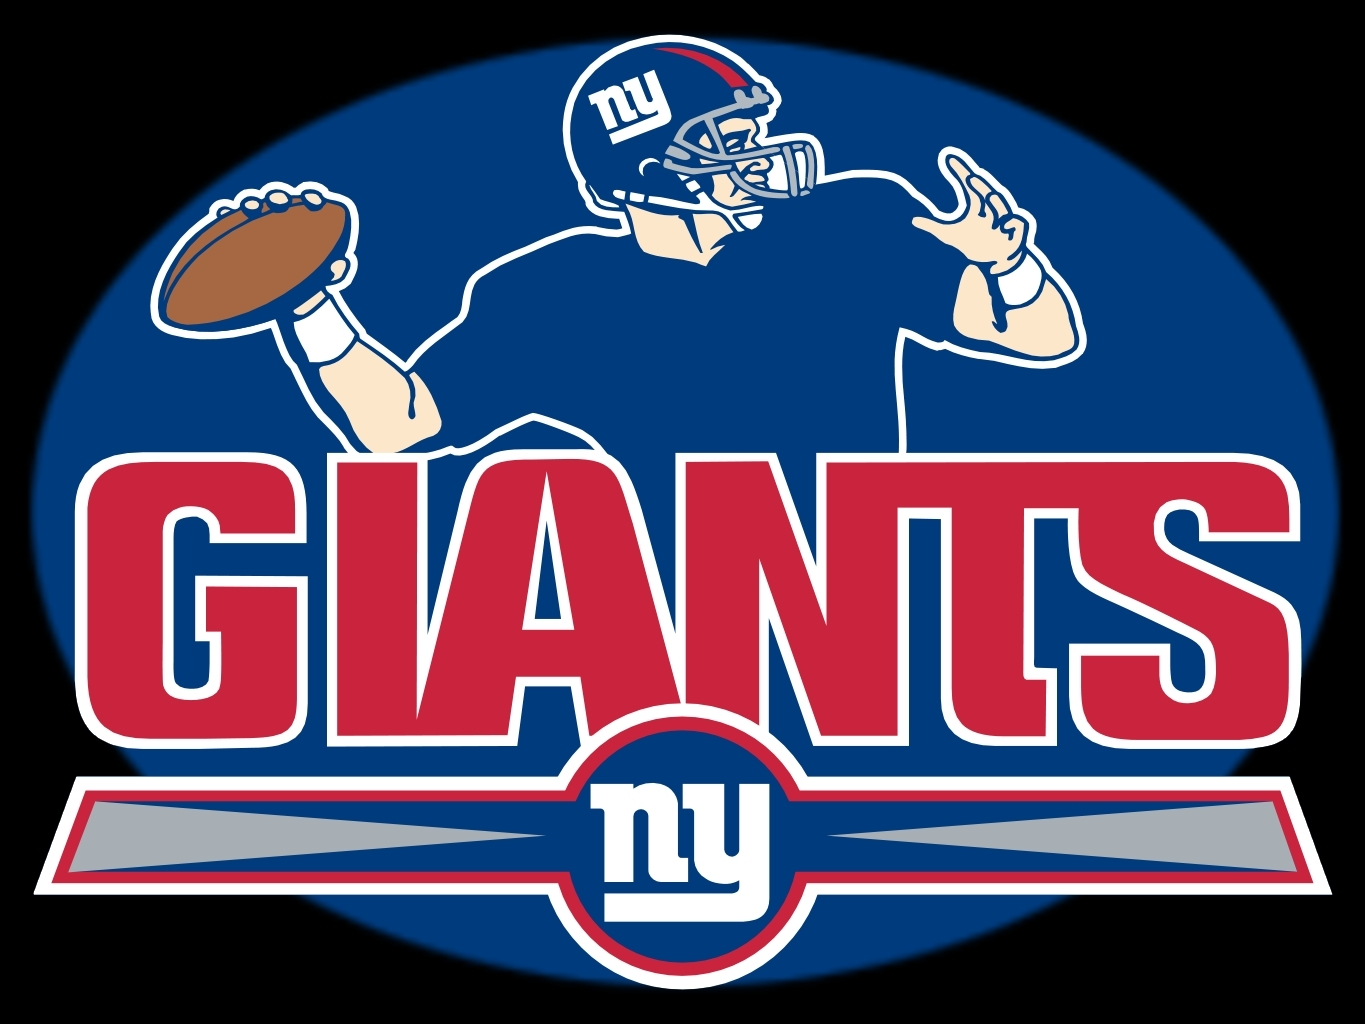 Football clipart ny giants York New mobile york mobile